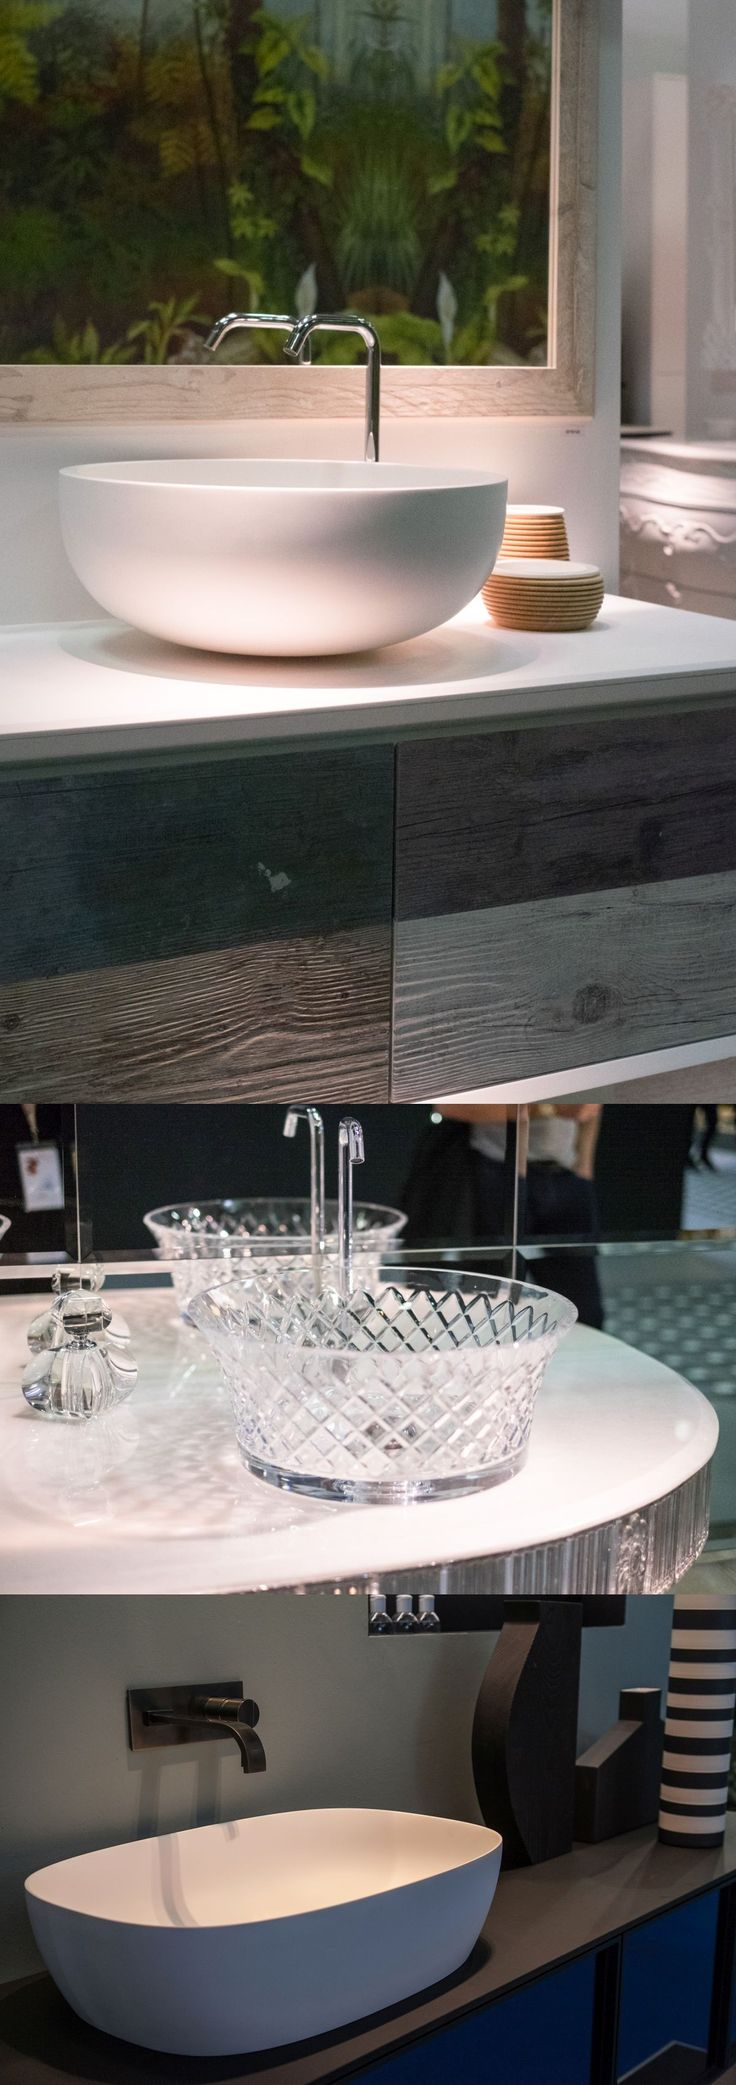 The washbasin is an integral part of the bathroom. It's a must-have no matter how big or small the bathroom is and regardless of the style of its design, its layout or its palette of colors and materials. Whether it's a washbasin, a classical sink or a bowl sink that you prefer, the goal is al...